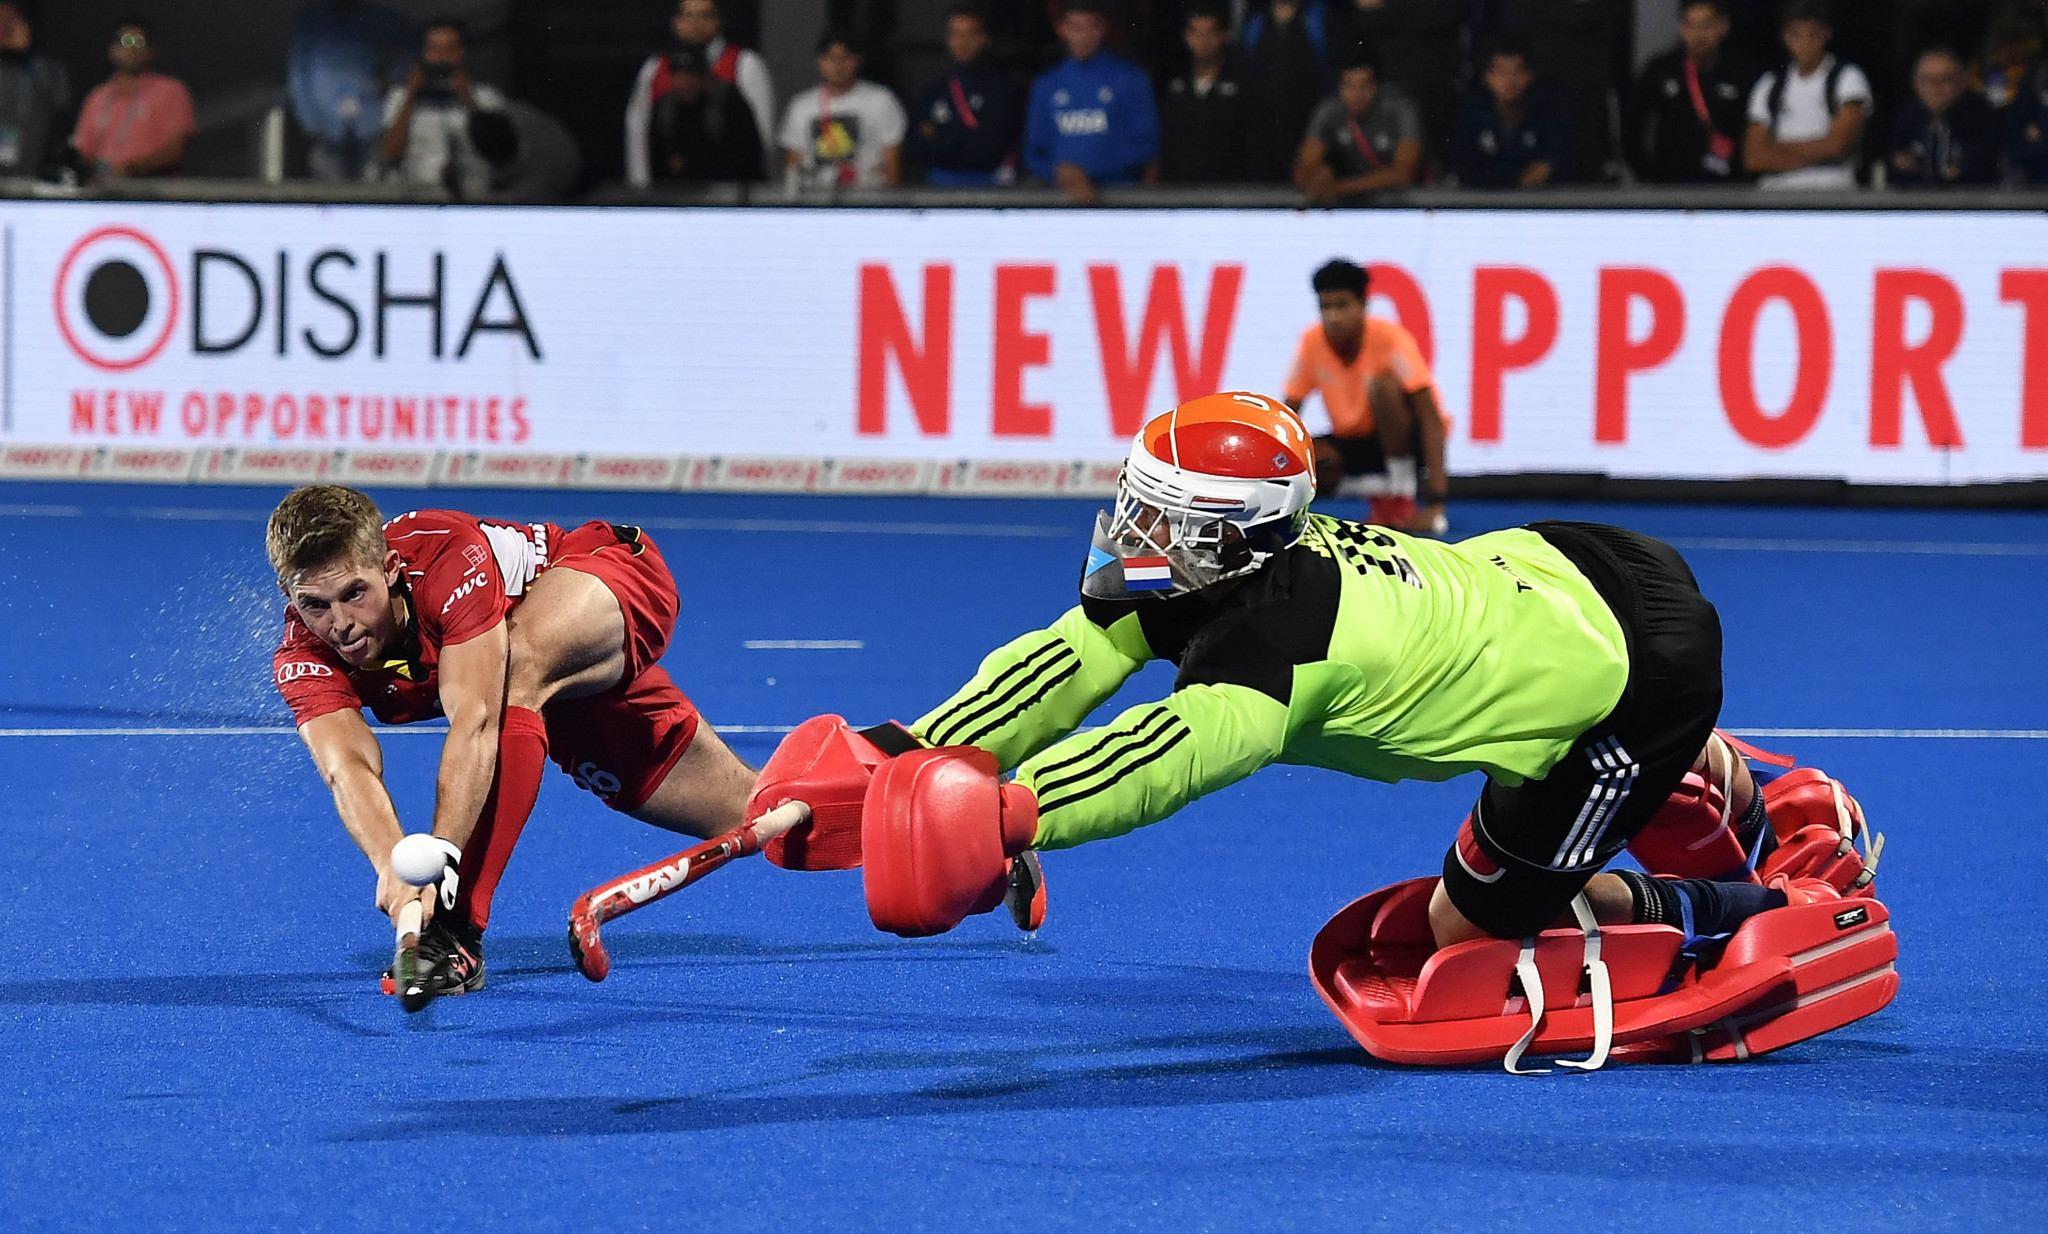 FIH President Batra claims Pro League will take hockey to next level on eve of opening match